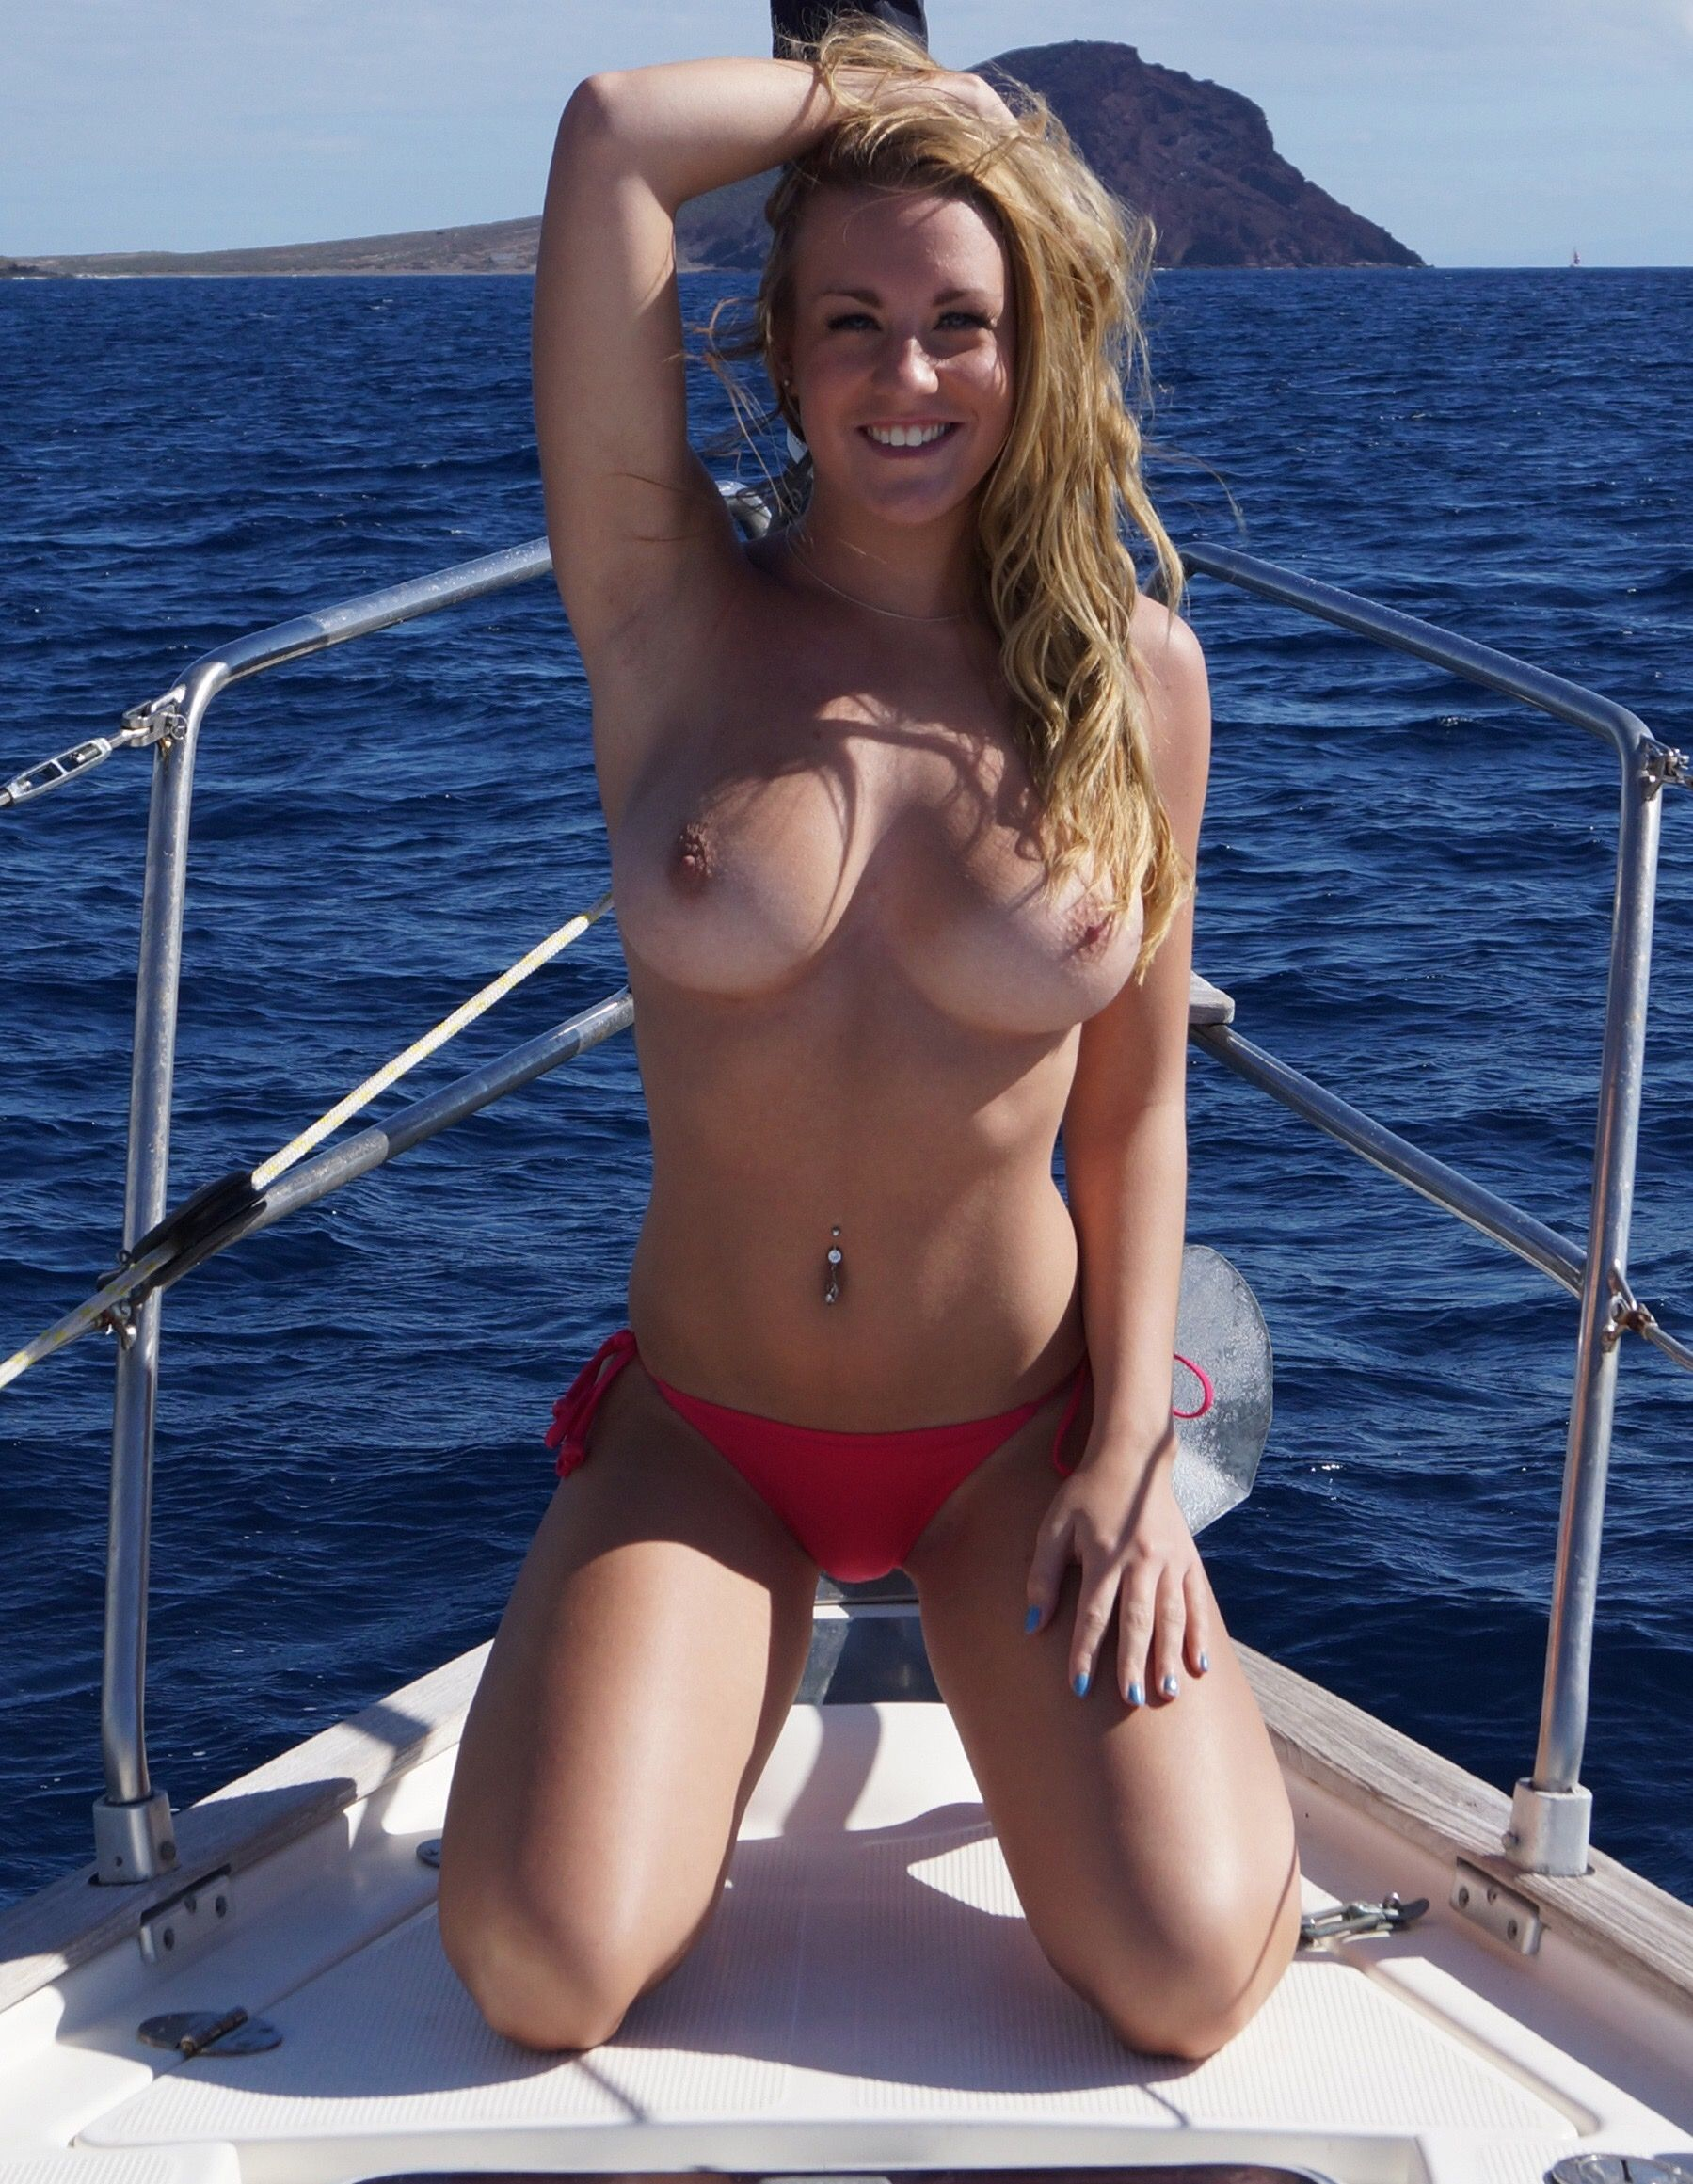 Topless Girls On A Boat